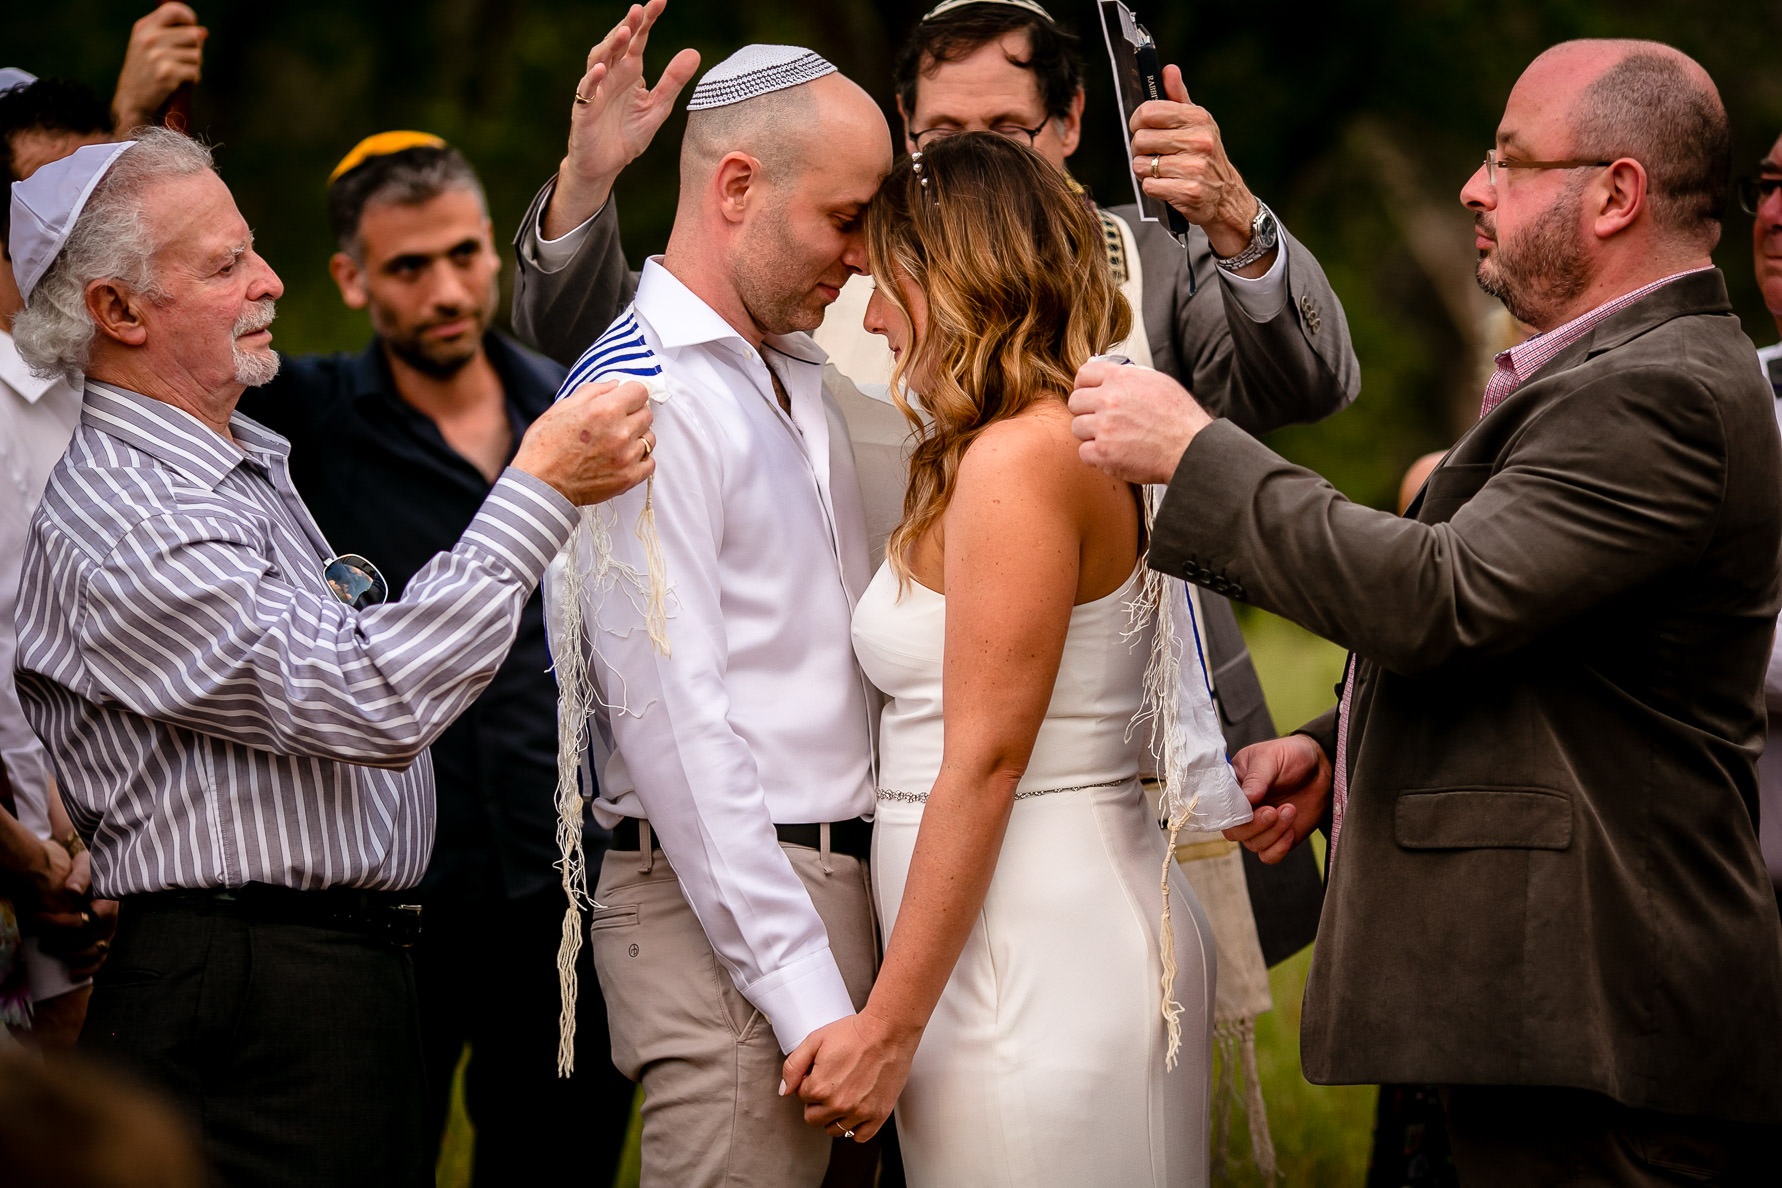 Austin Jewish Wedding Photographer